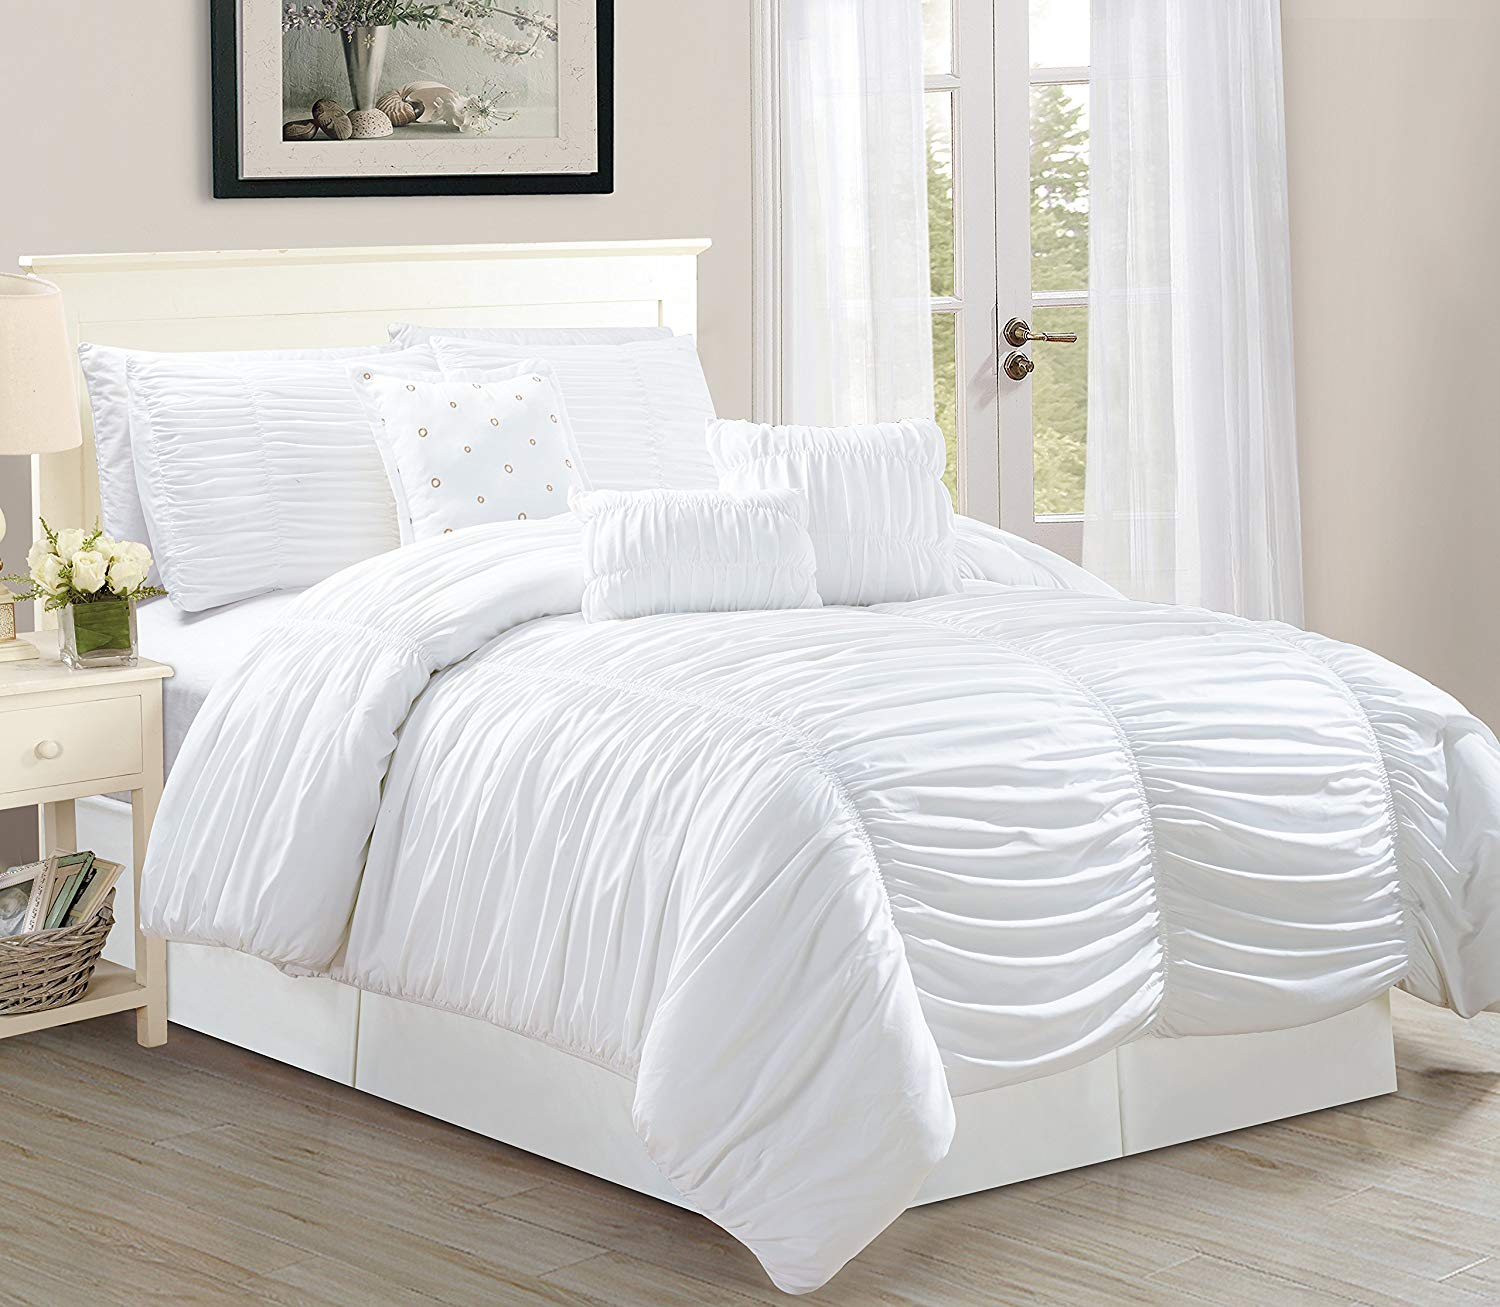 7 Piece Royal White Bed In A Bag With Luxury Pleated Comforter Sets World Products Mart